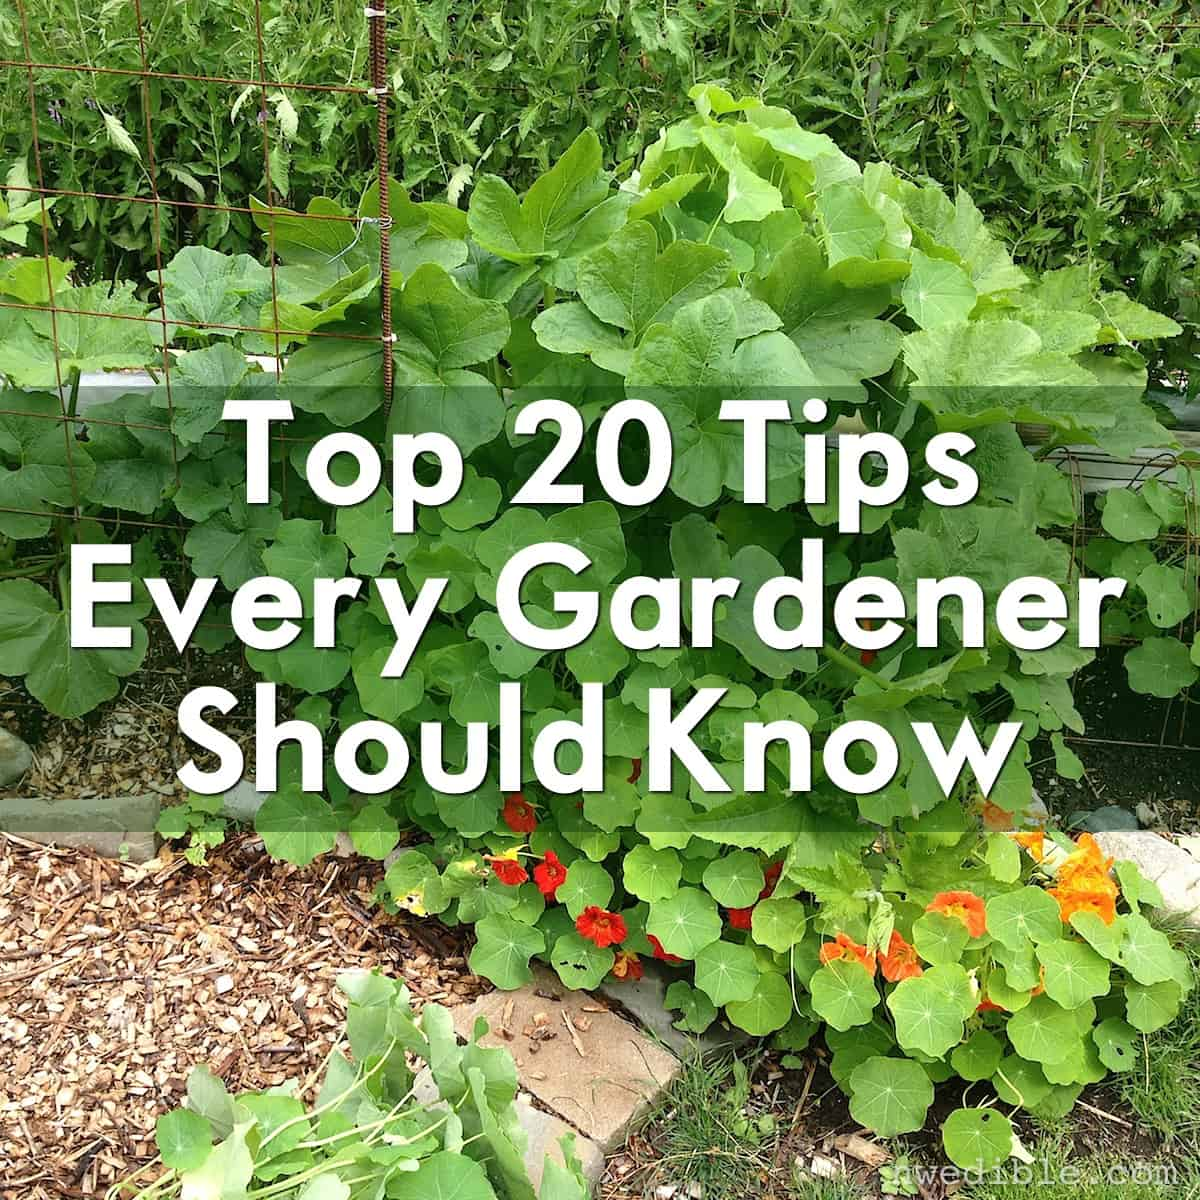 Top 20 Tips Every Gardener Should Know